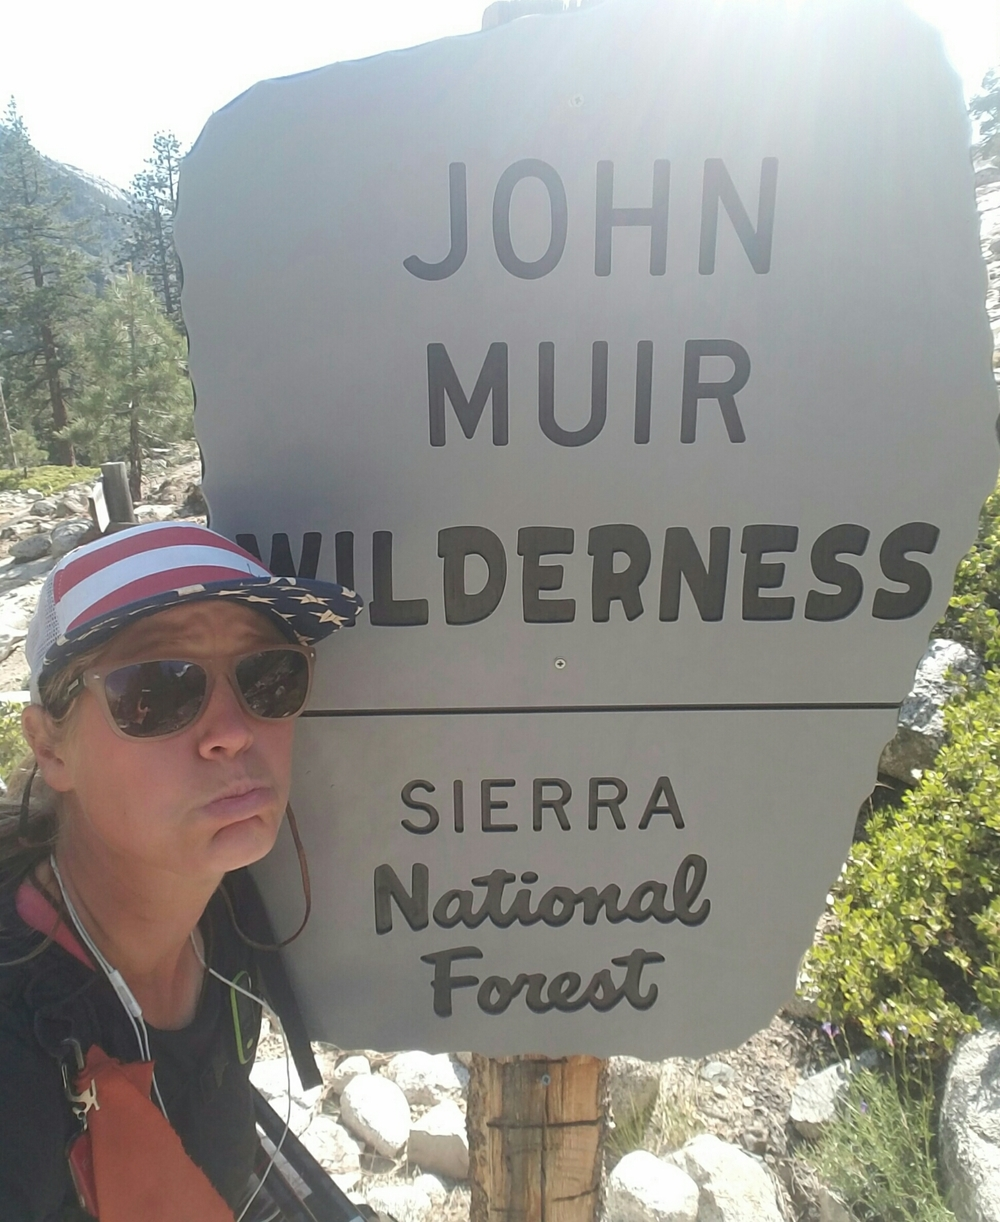 leaving the John Muir Wilderness :(